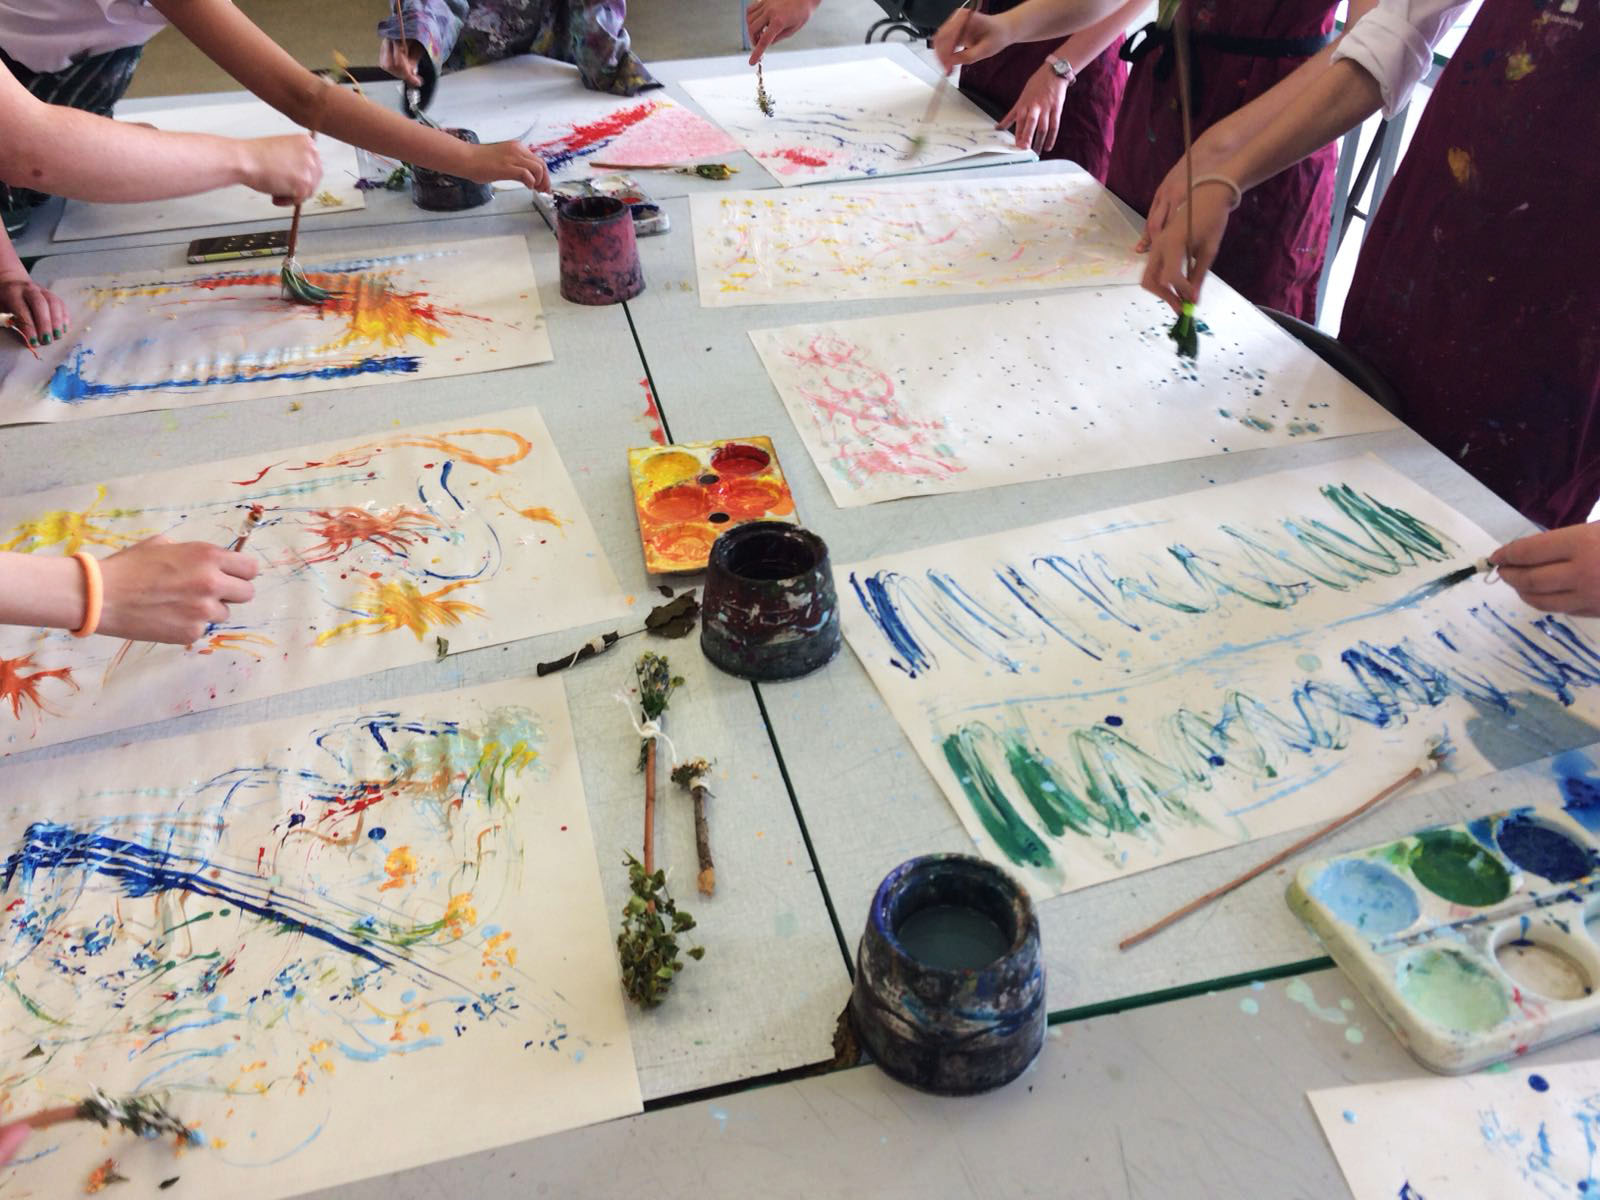 Creating collaborative, abstract paintings with handmade, natural paintbrushes.